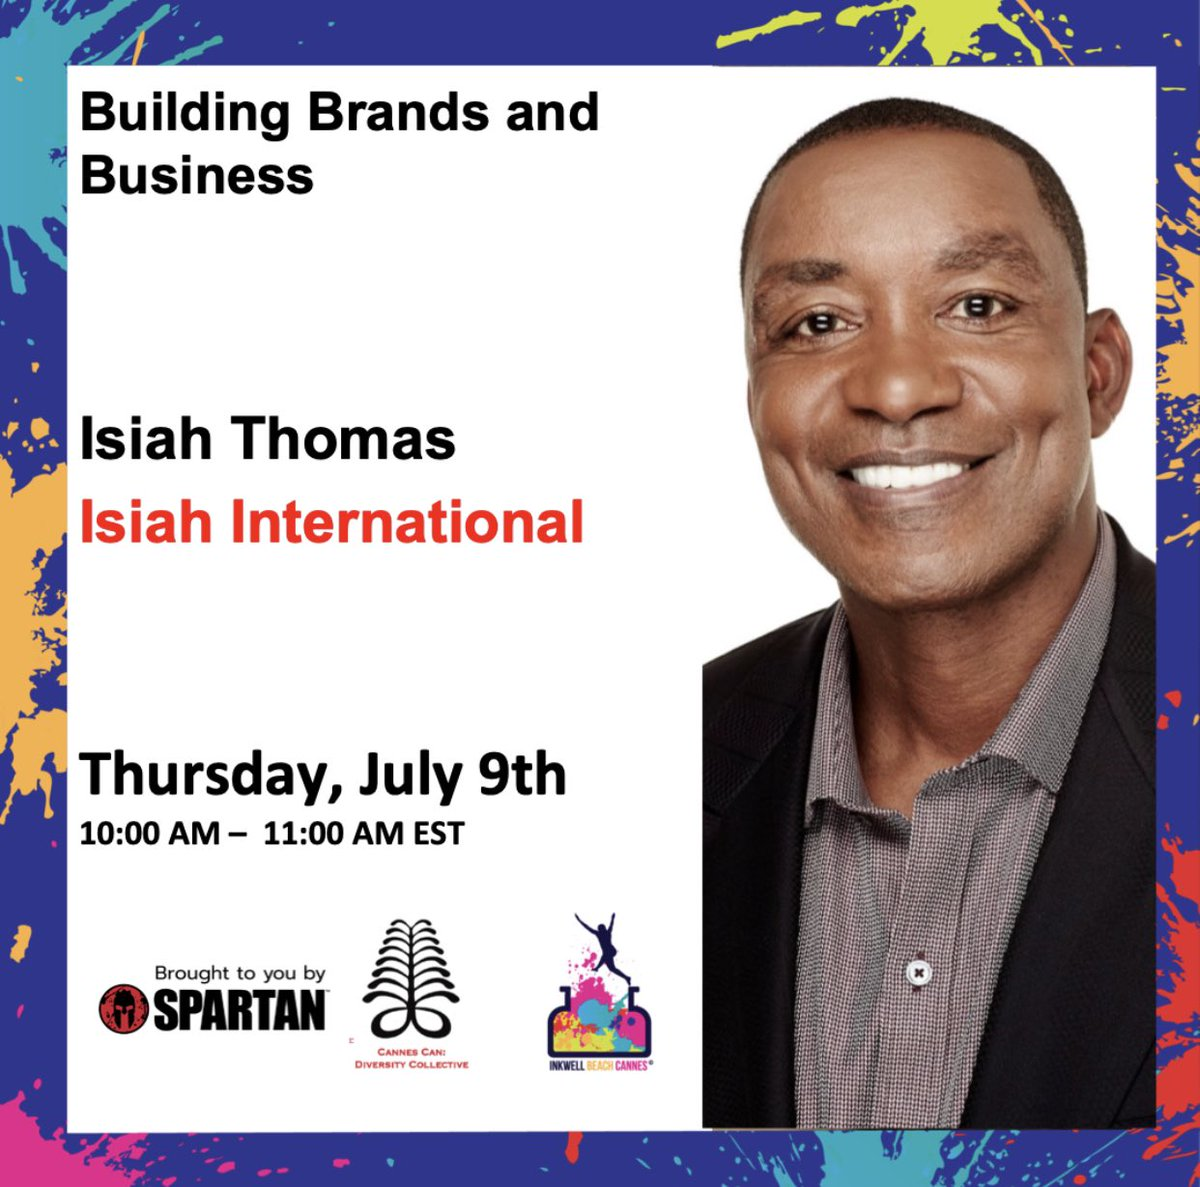 Join me #canneslive #inkwell interview on Business and Branding https://t.co/tTNVKd53lI